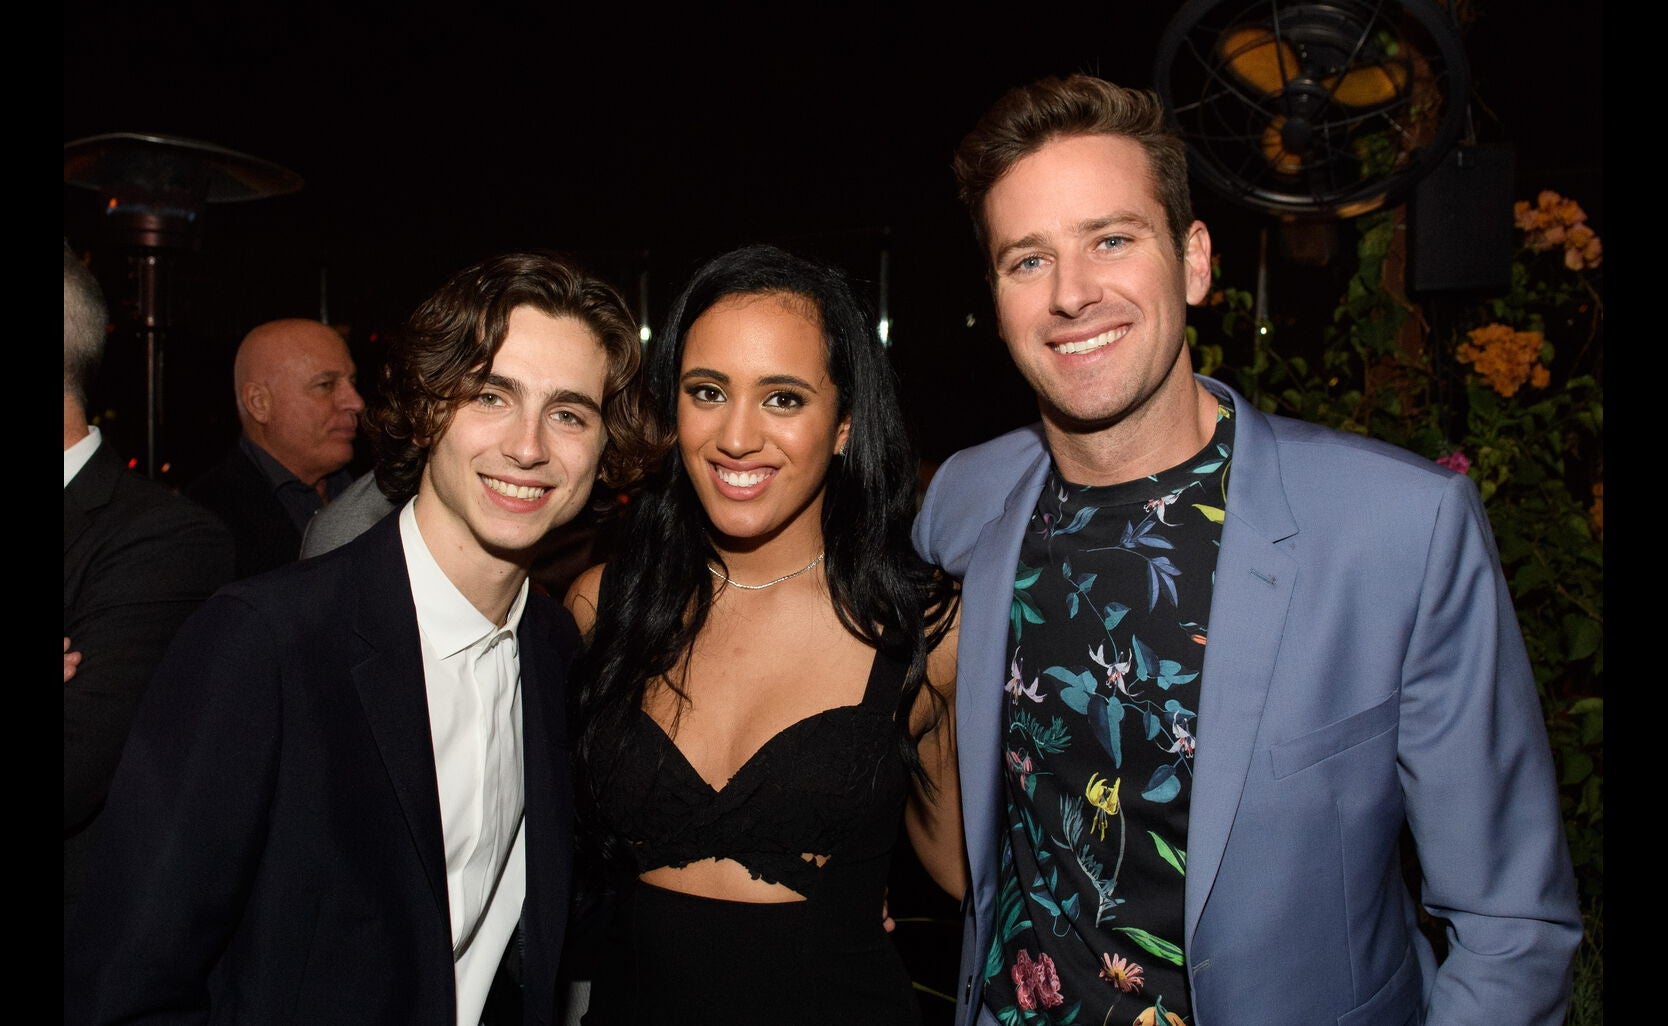 Timothee Chalamet, Simone Garcia Johnson and Armie Hammer at the Golden Globe Ambassador 2018 event